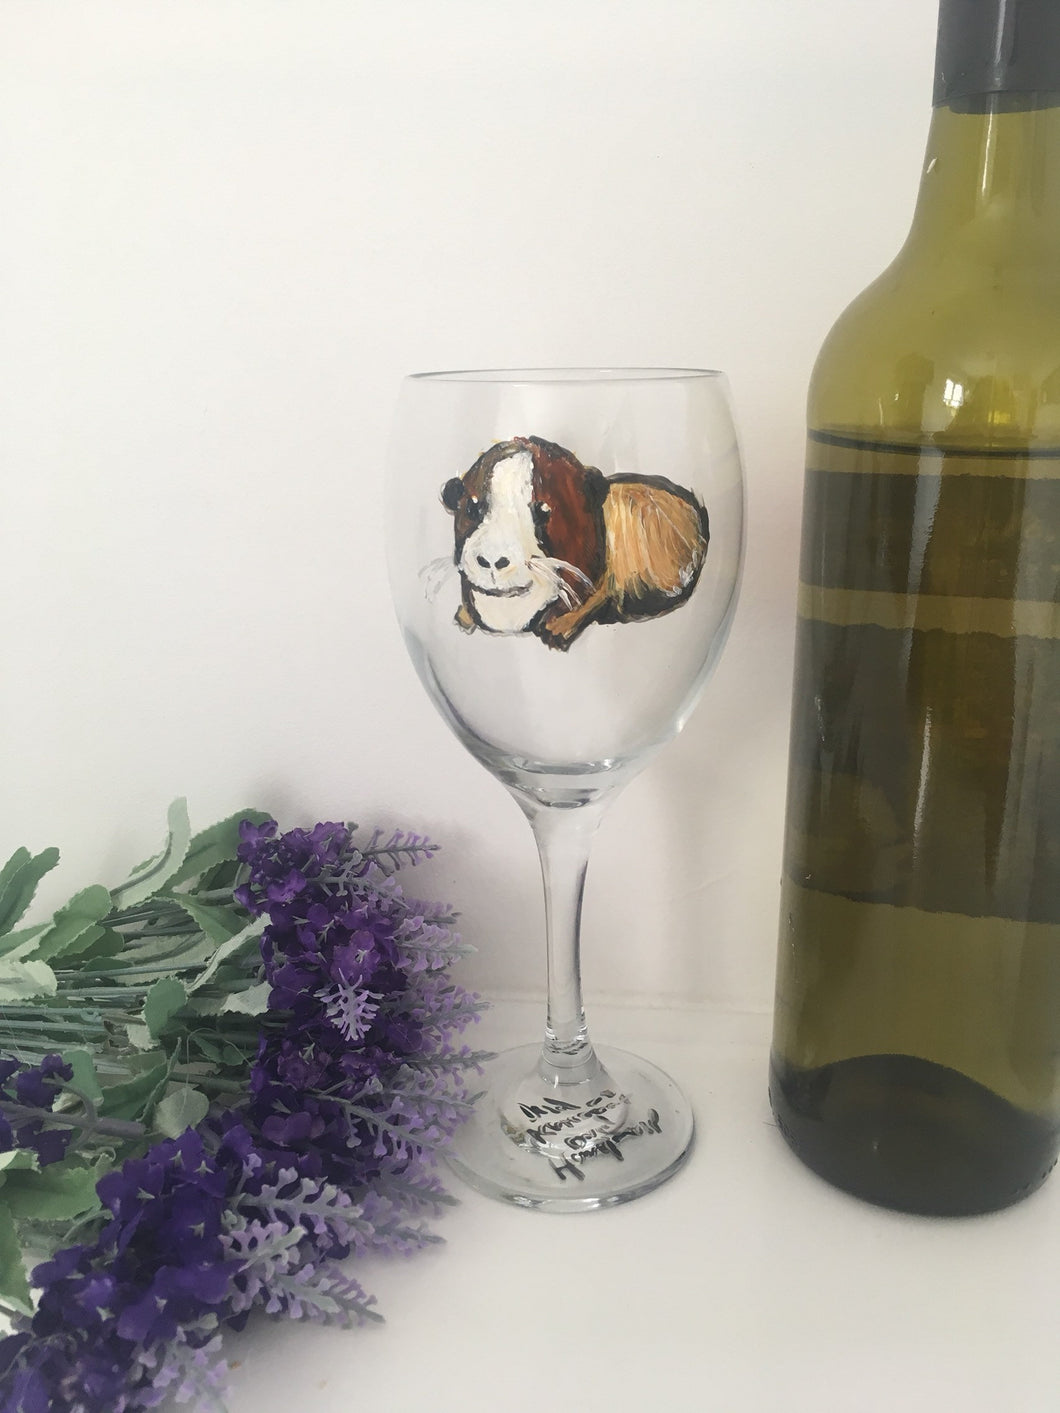 Guinea pig wine glass, gin glass